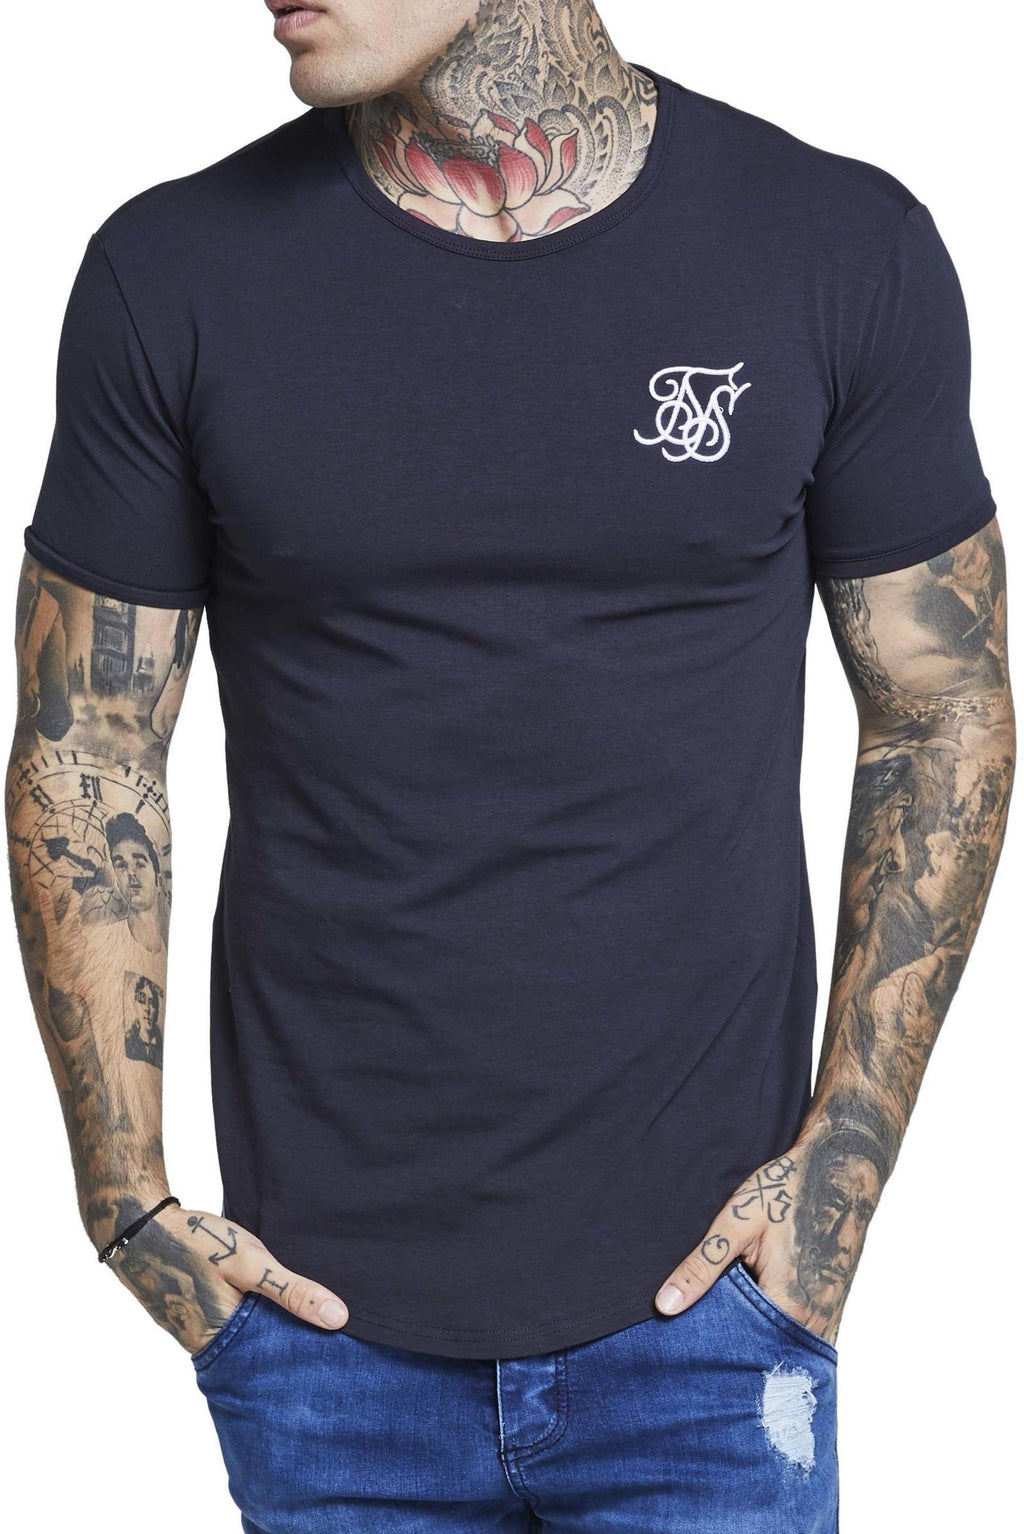 Sik Silk Short Sleeve Gym T-Shirt Navy